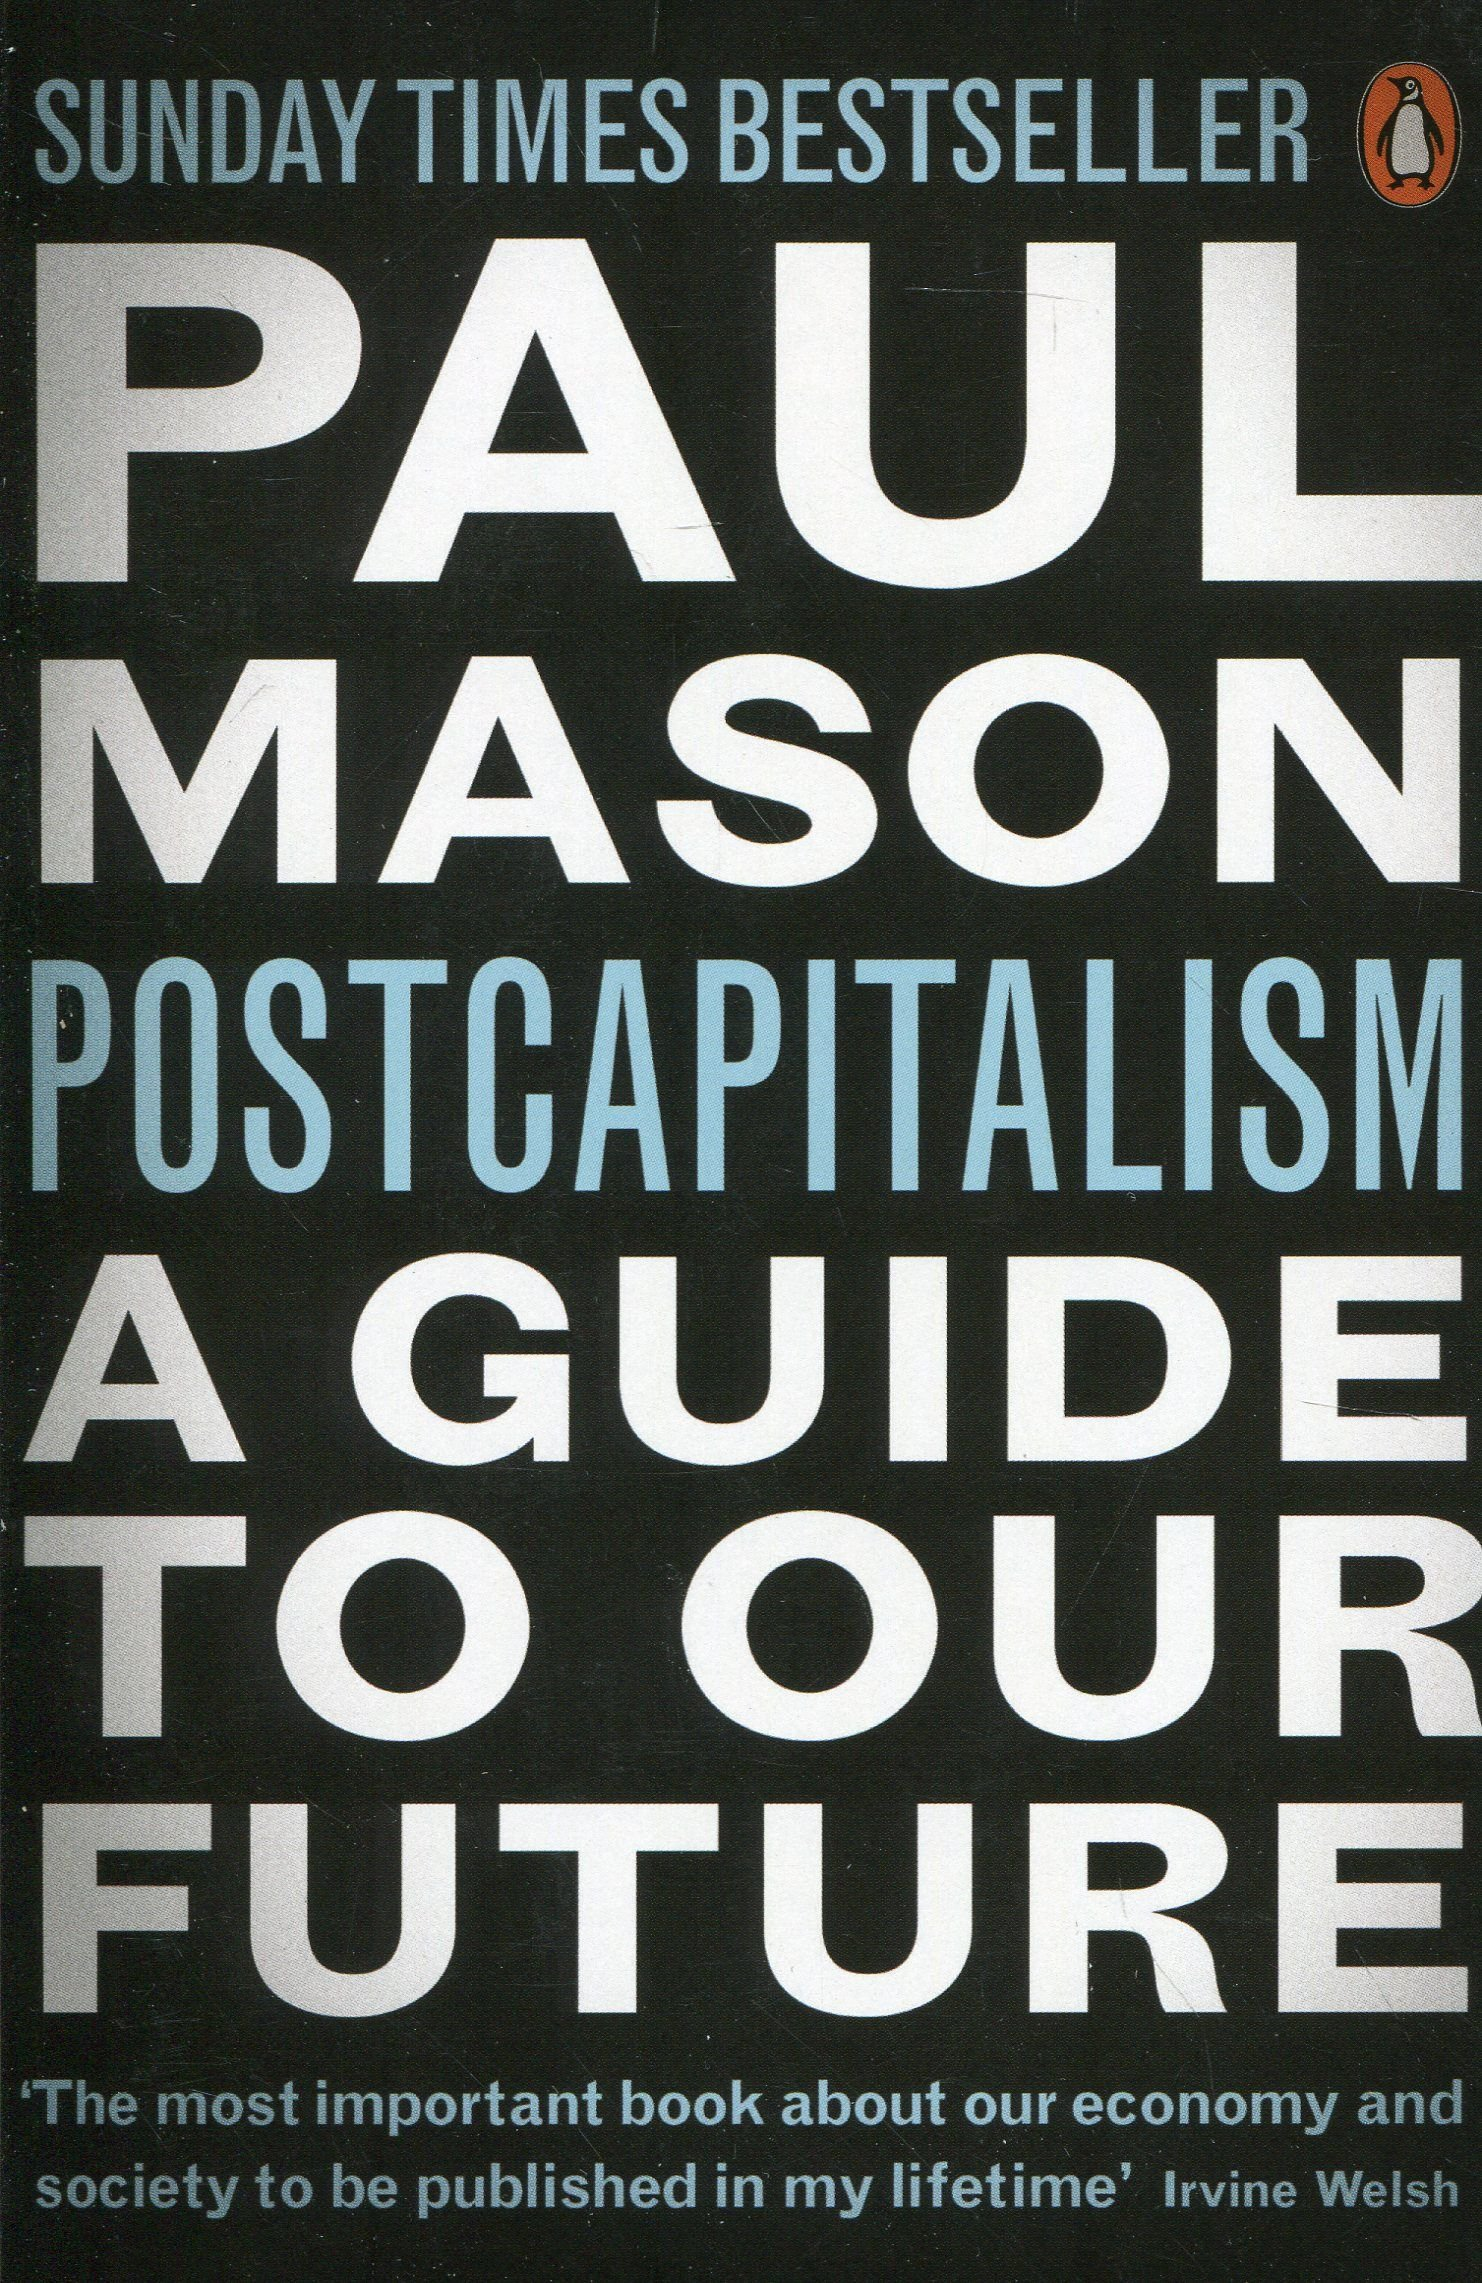 postcapitalism-a-guide-to-our-future